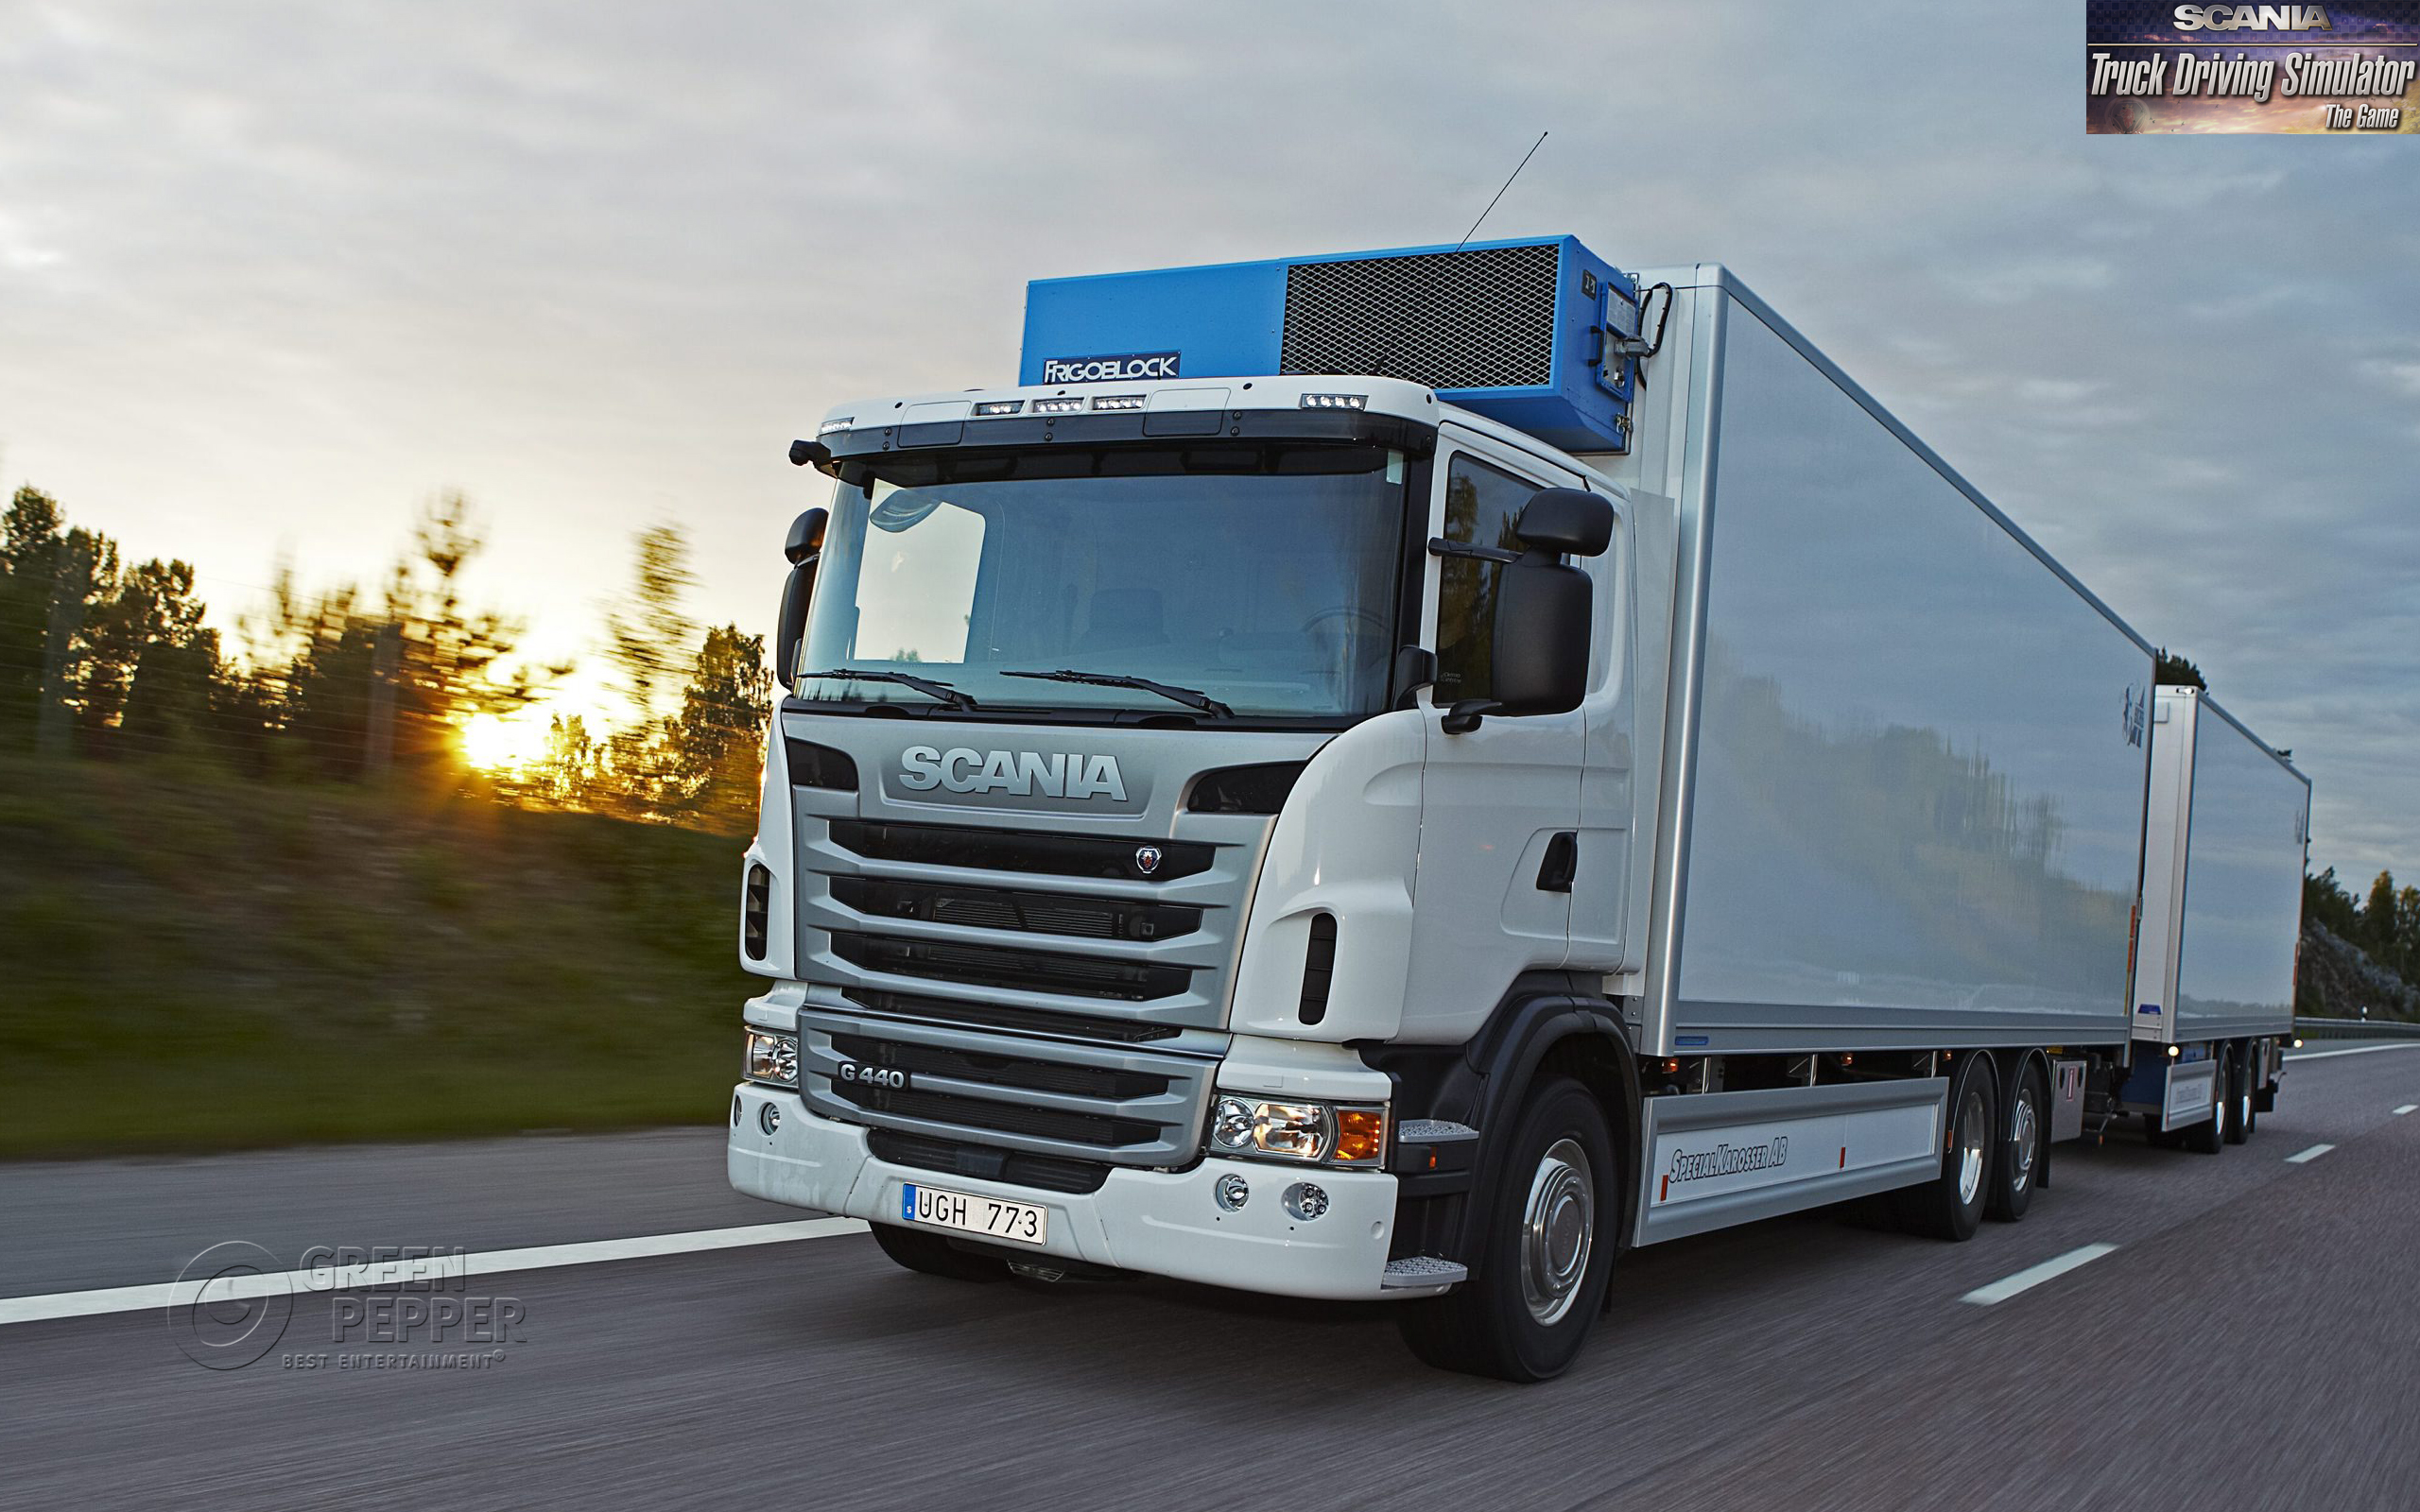 Scania Truck Driving Simulator The Game 2012 Promotional